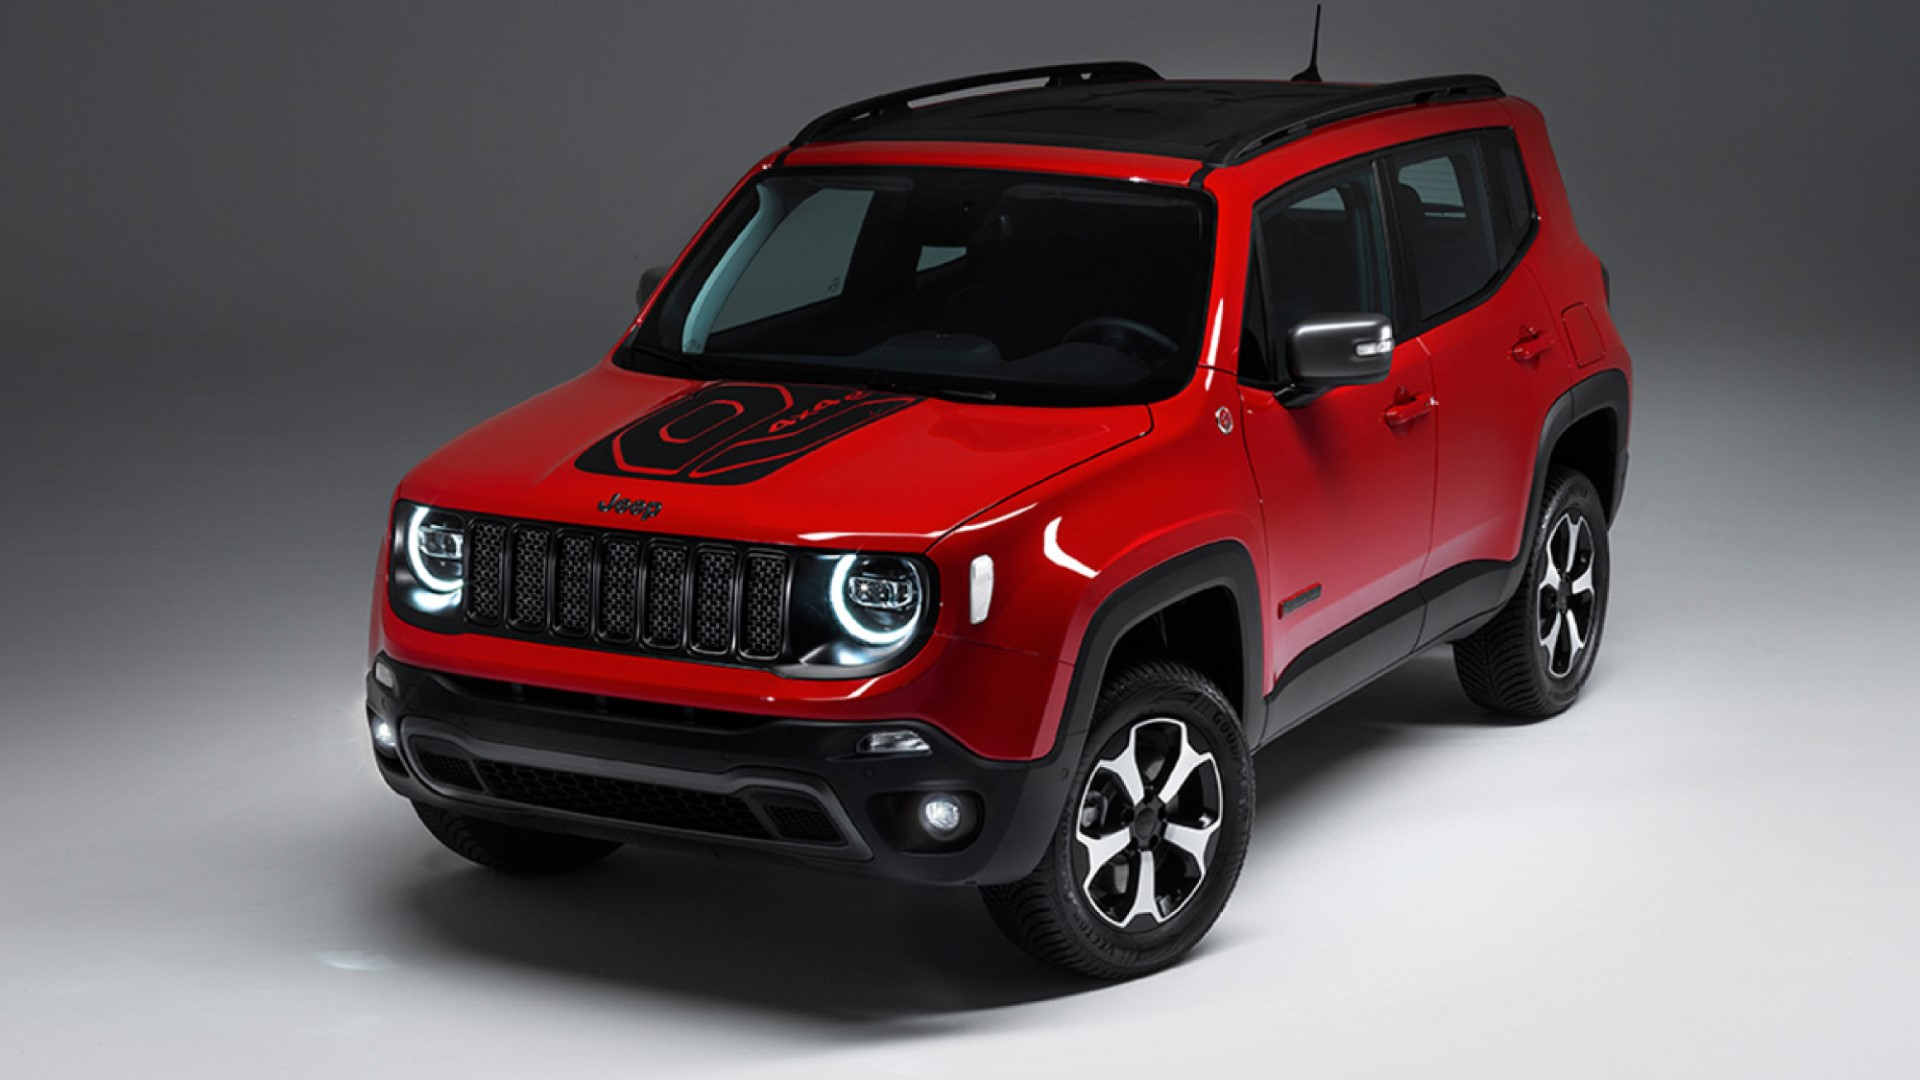 Renegade Plug-In Hybrid